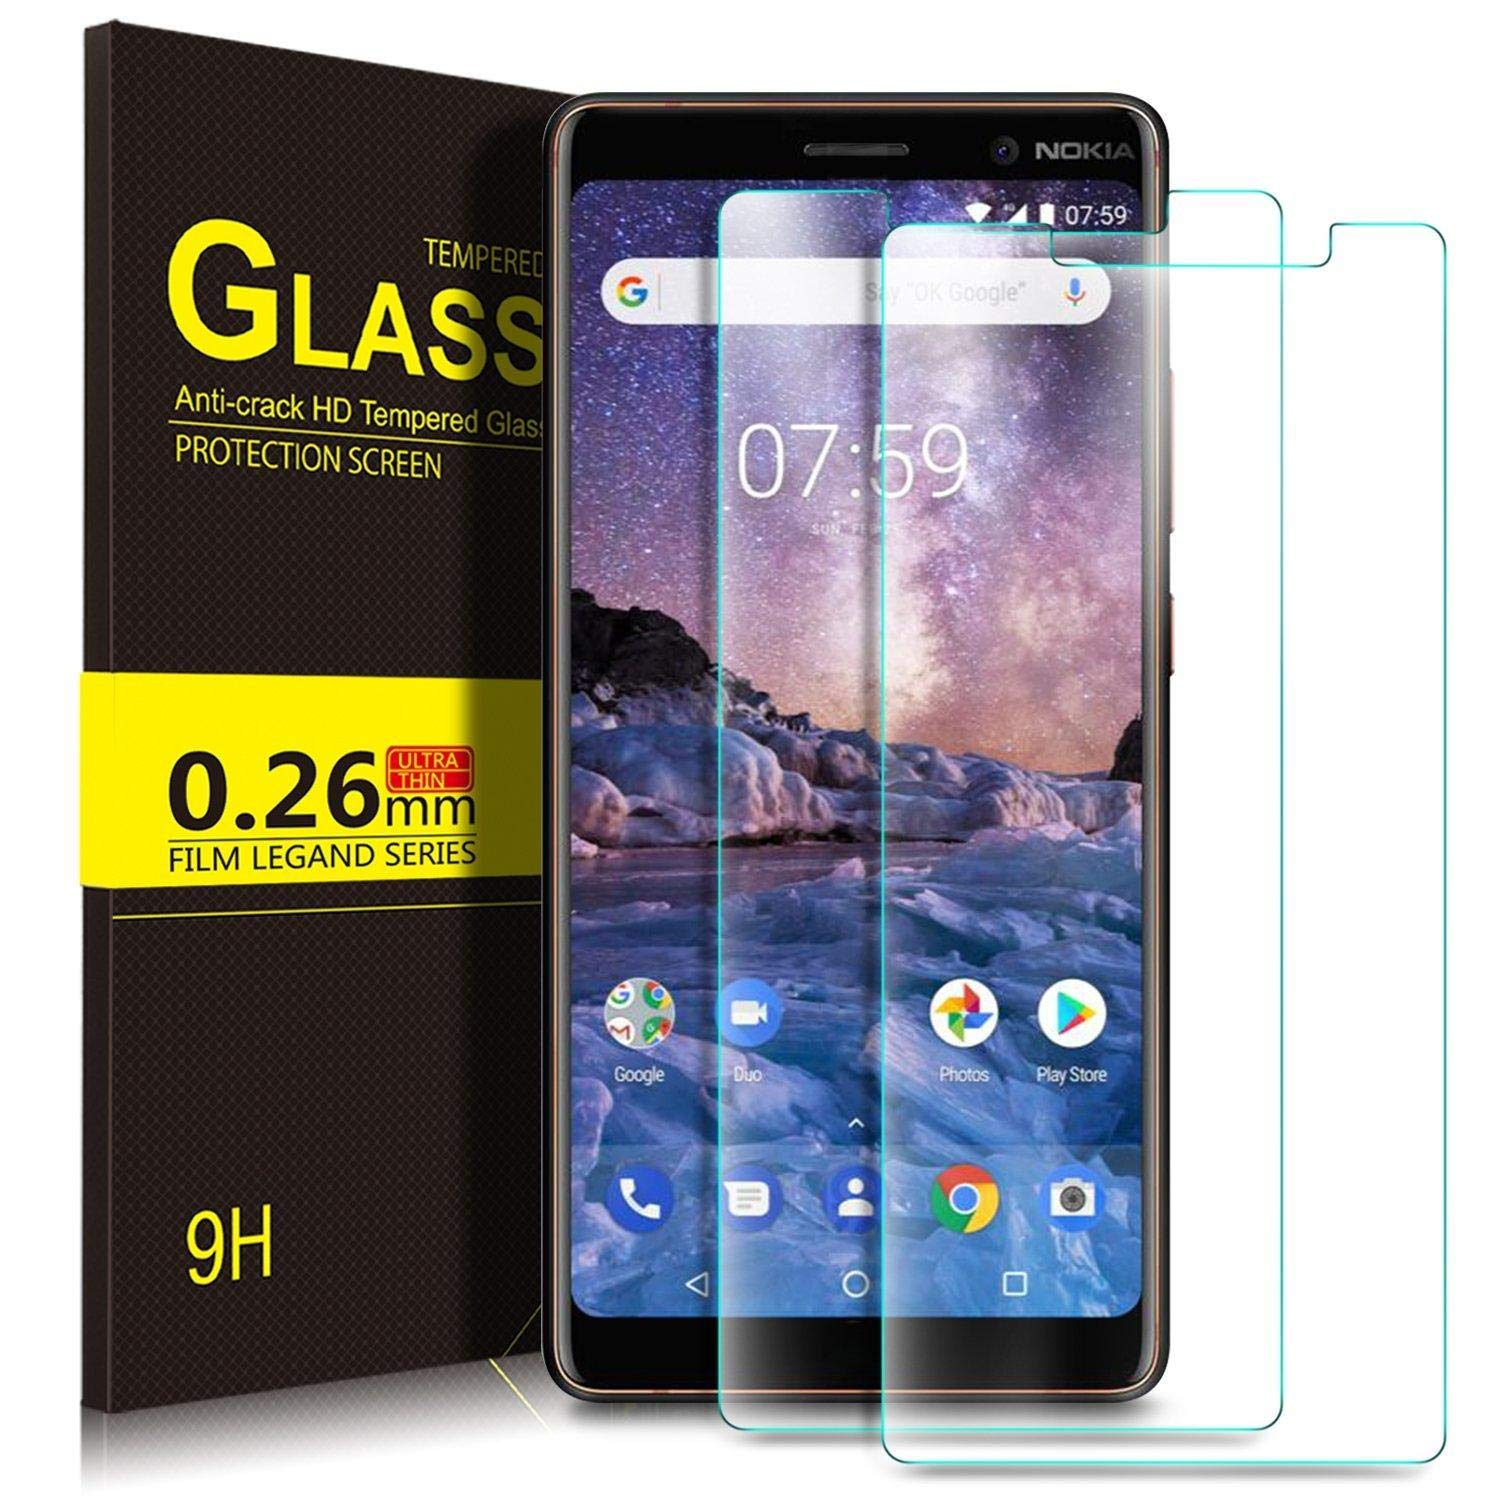 2 Pack -Nokia 7 Plus 2018 Screen Protector 9H Hardness HD Tempered Glass  Screen ProtectorHardness HD Tempered Glass Screen Protector